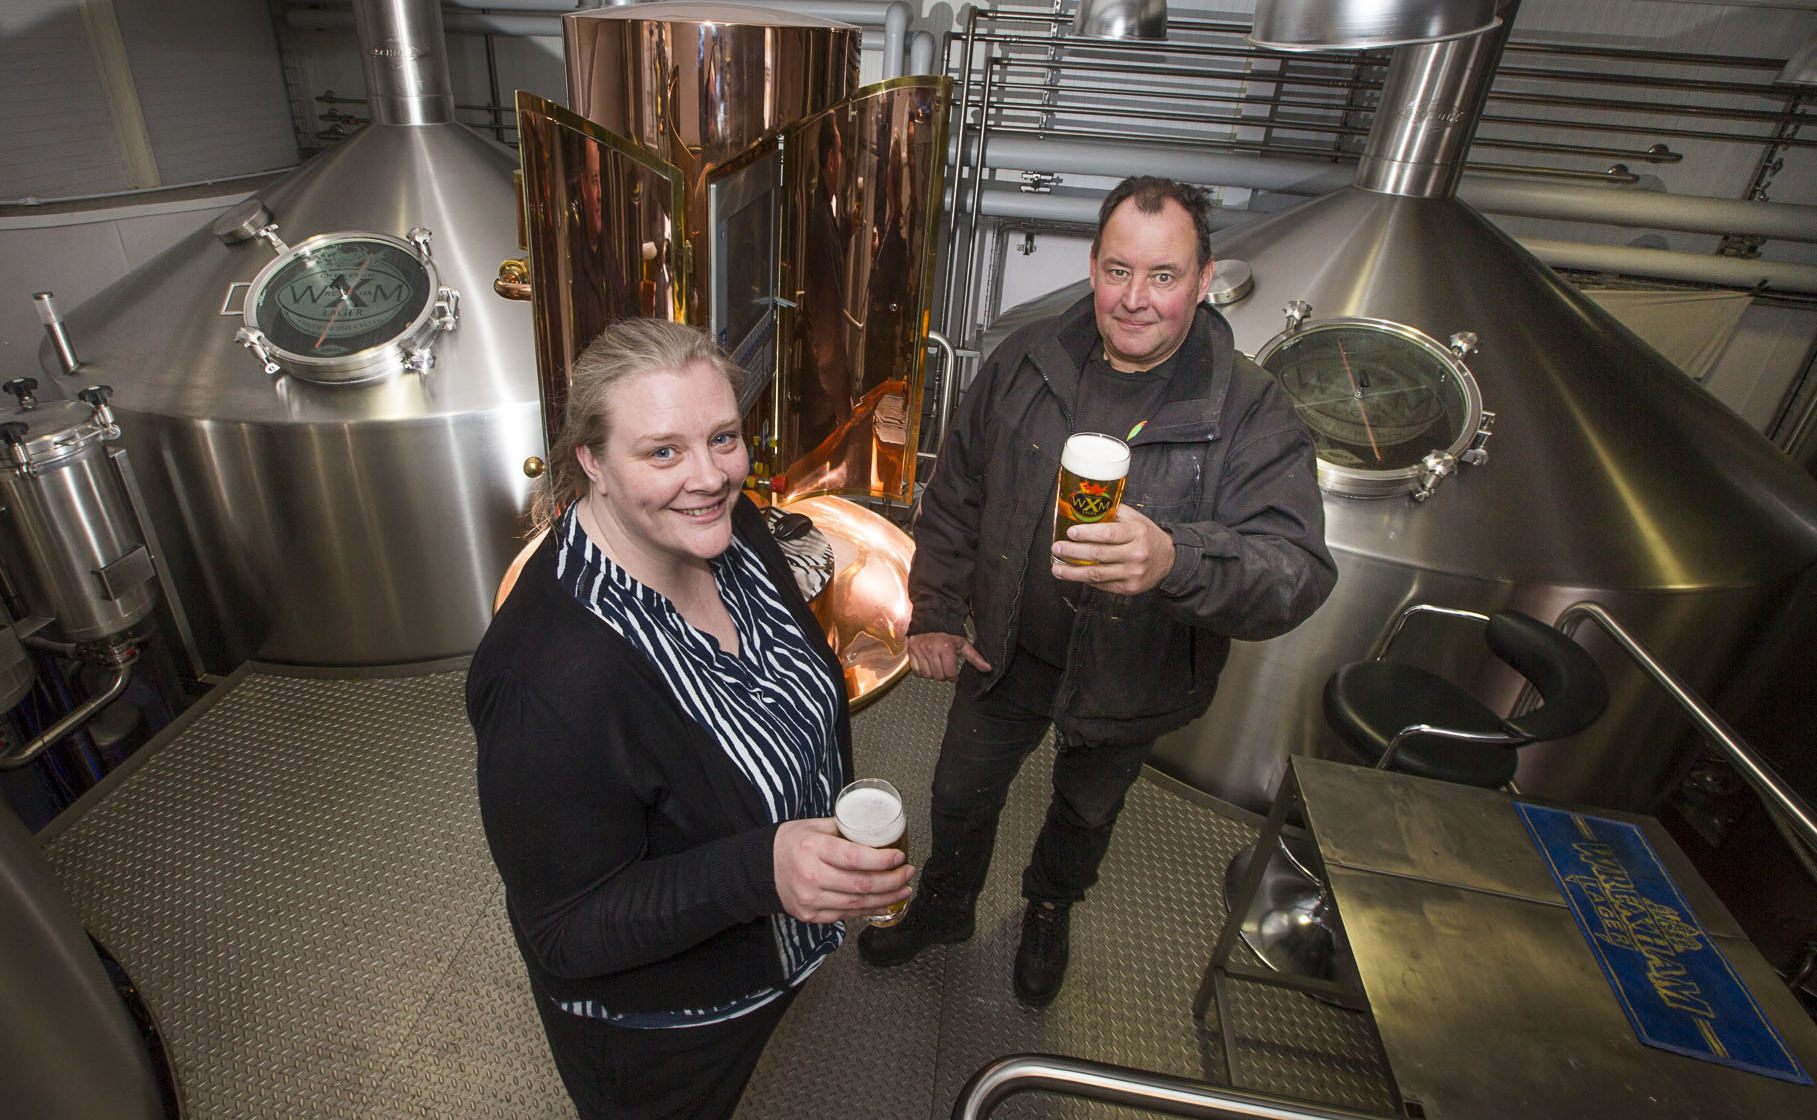 Managing director Mark Roberts with Donna Hughes, of Wrexham Northern Marches, at the Wrexham Lager brewery in Wrexham.